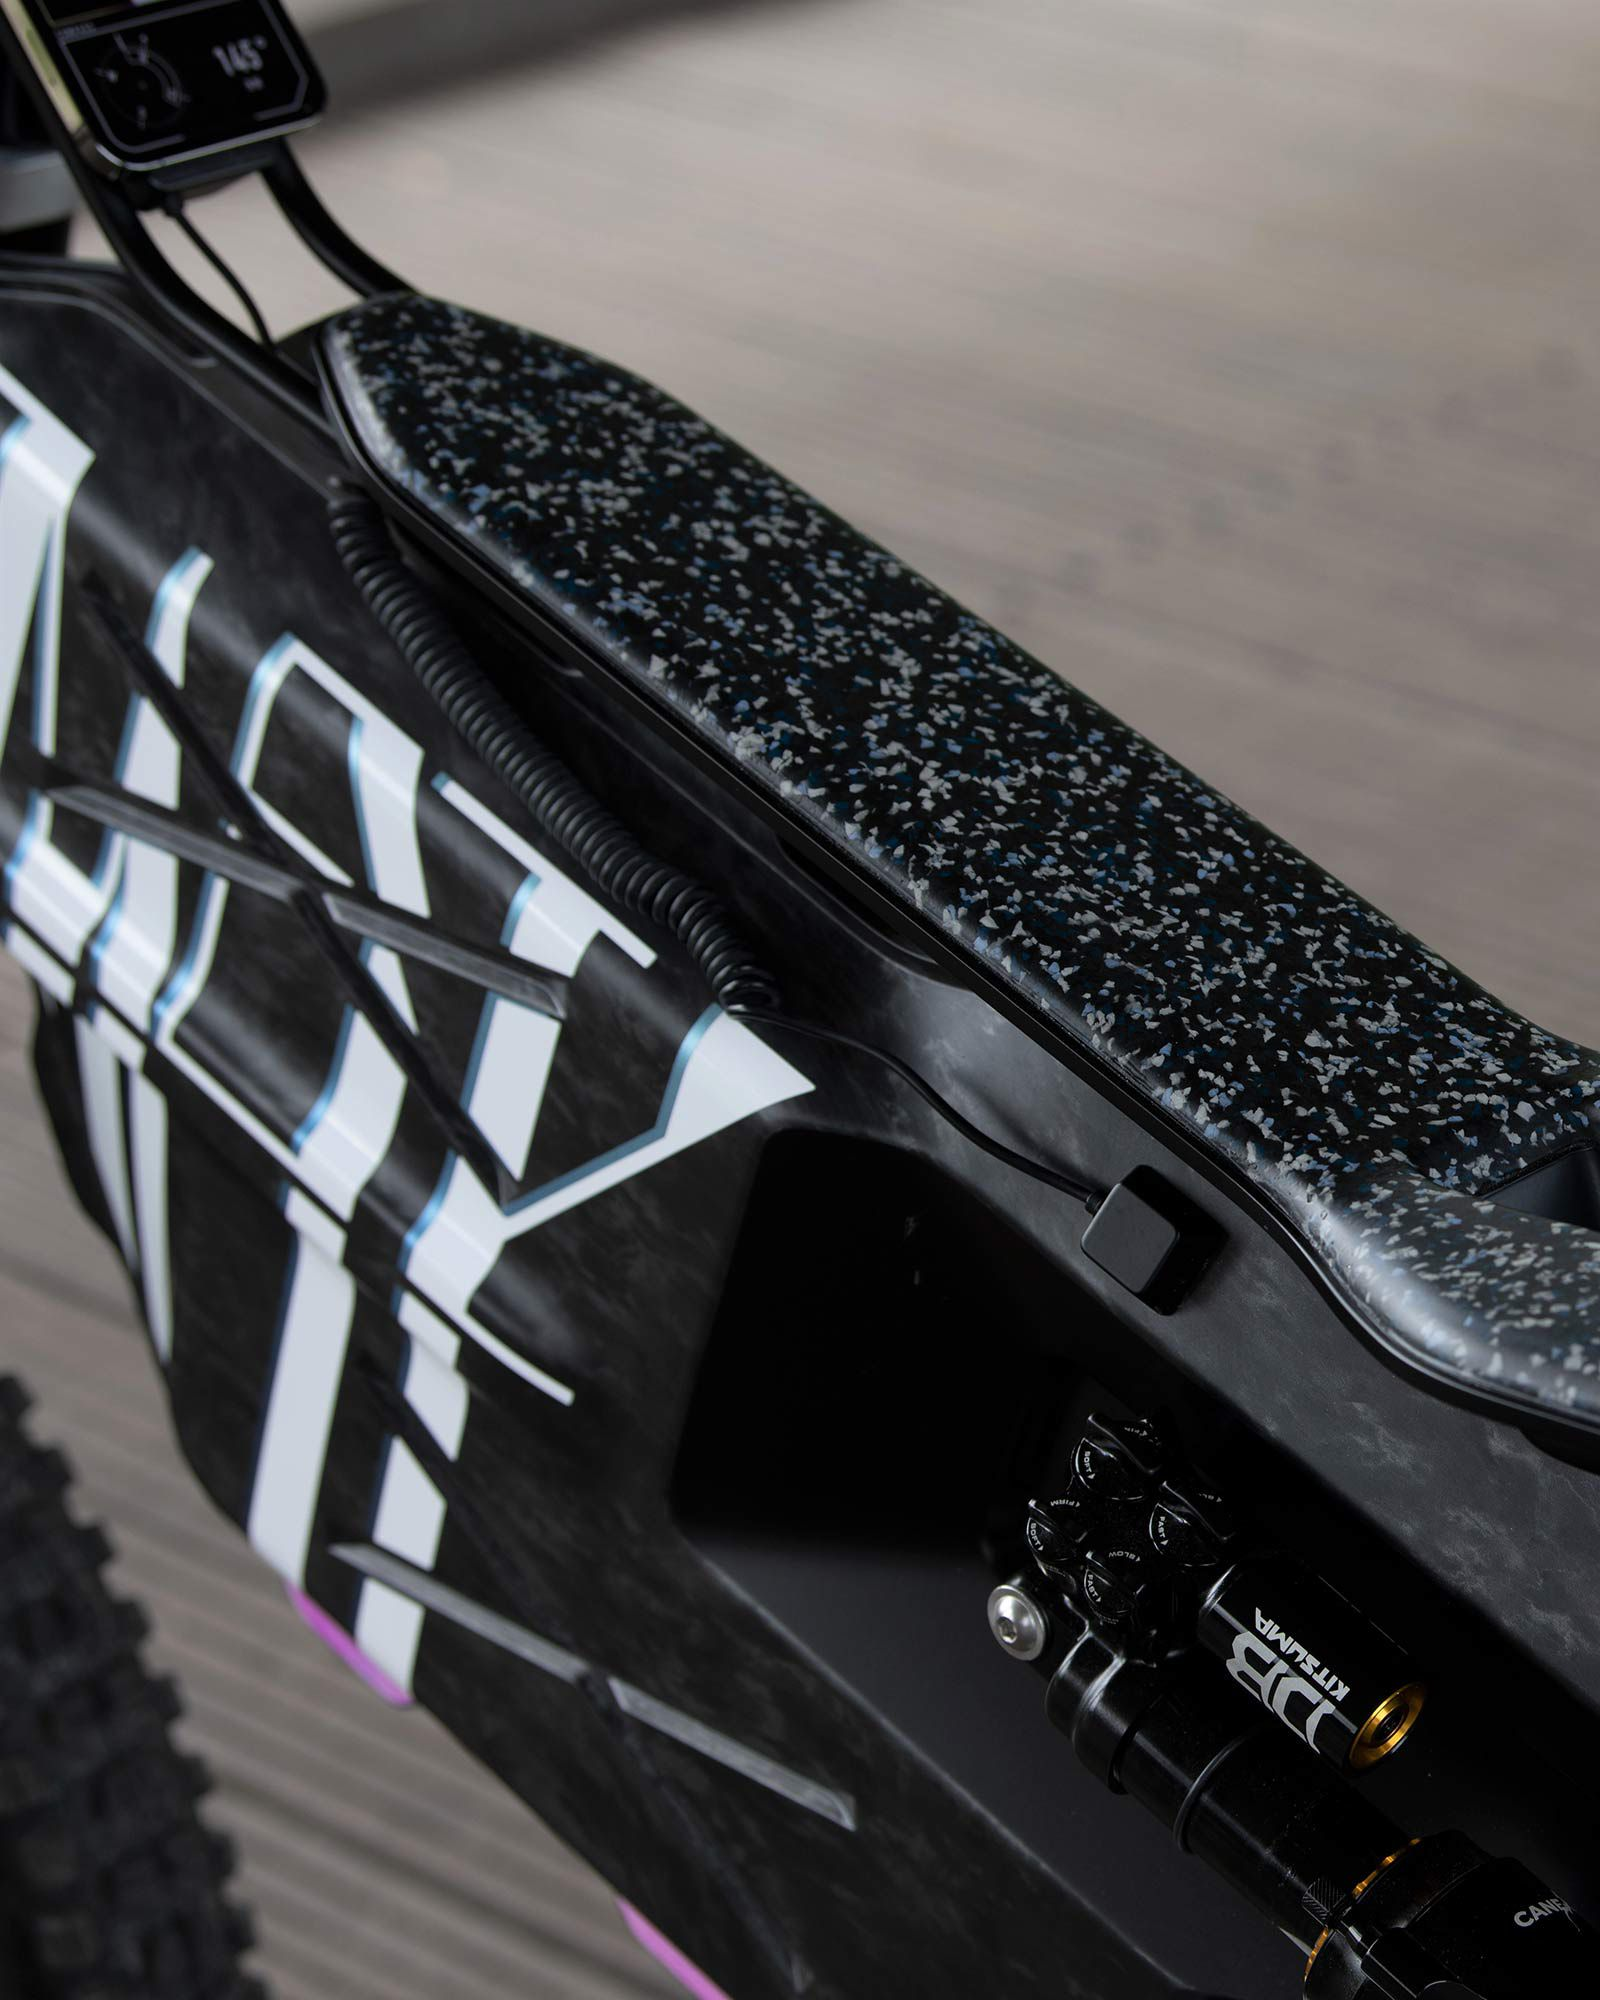 The flat seat borrows its profile from the narrow pads often seen on dirt bikes. BMW says it's made from recycled plastic.